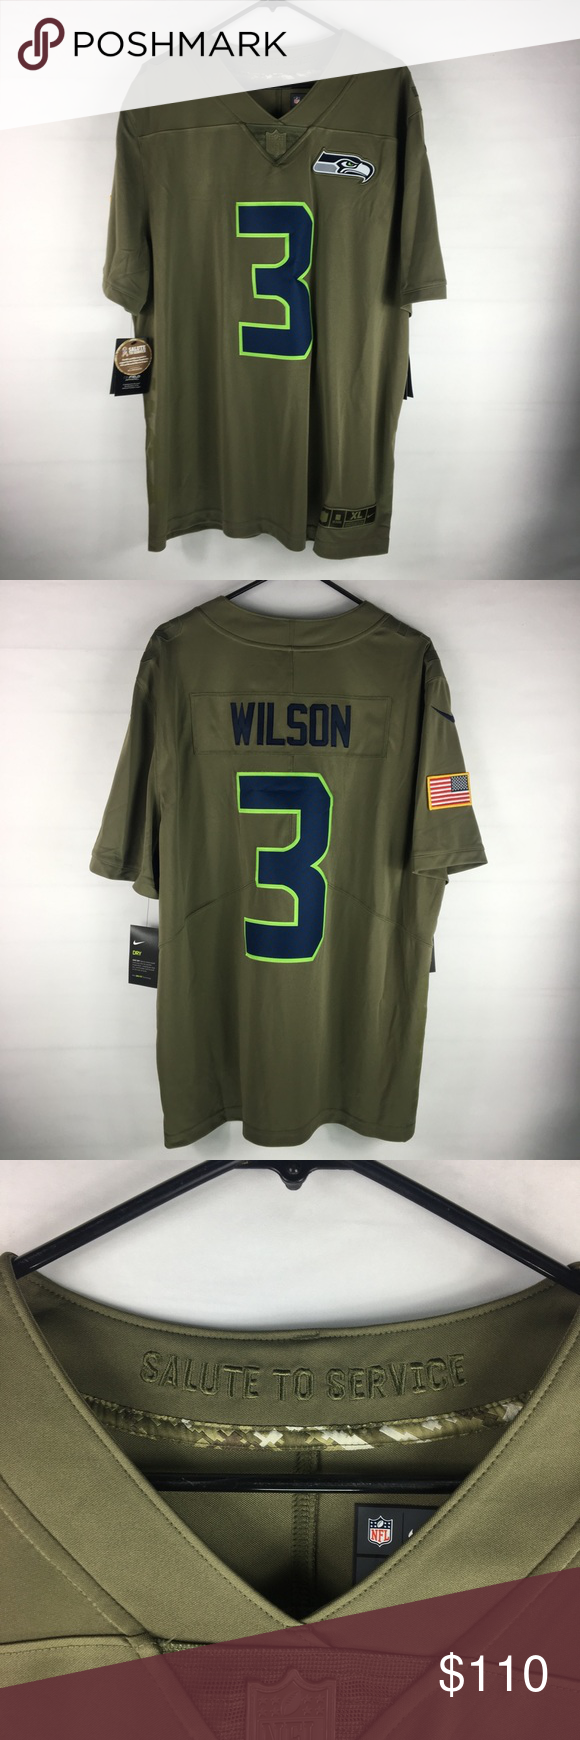 Nike NFL Salute to Sevice Russell Wilson Jersey NWT  71ec3ff25